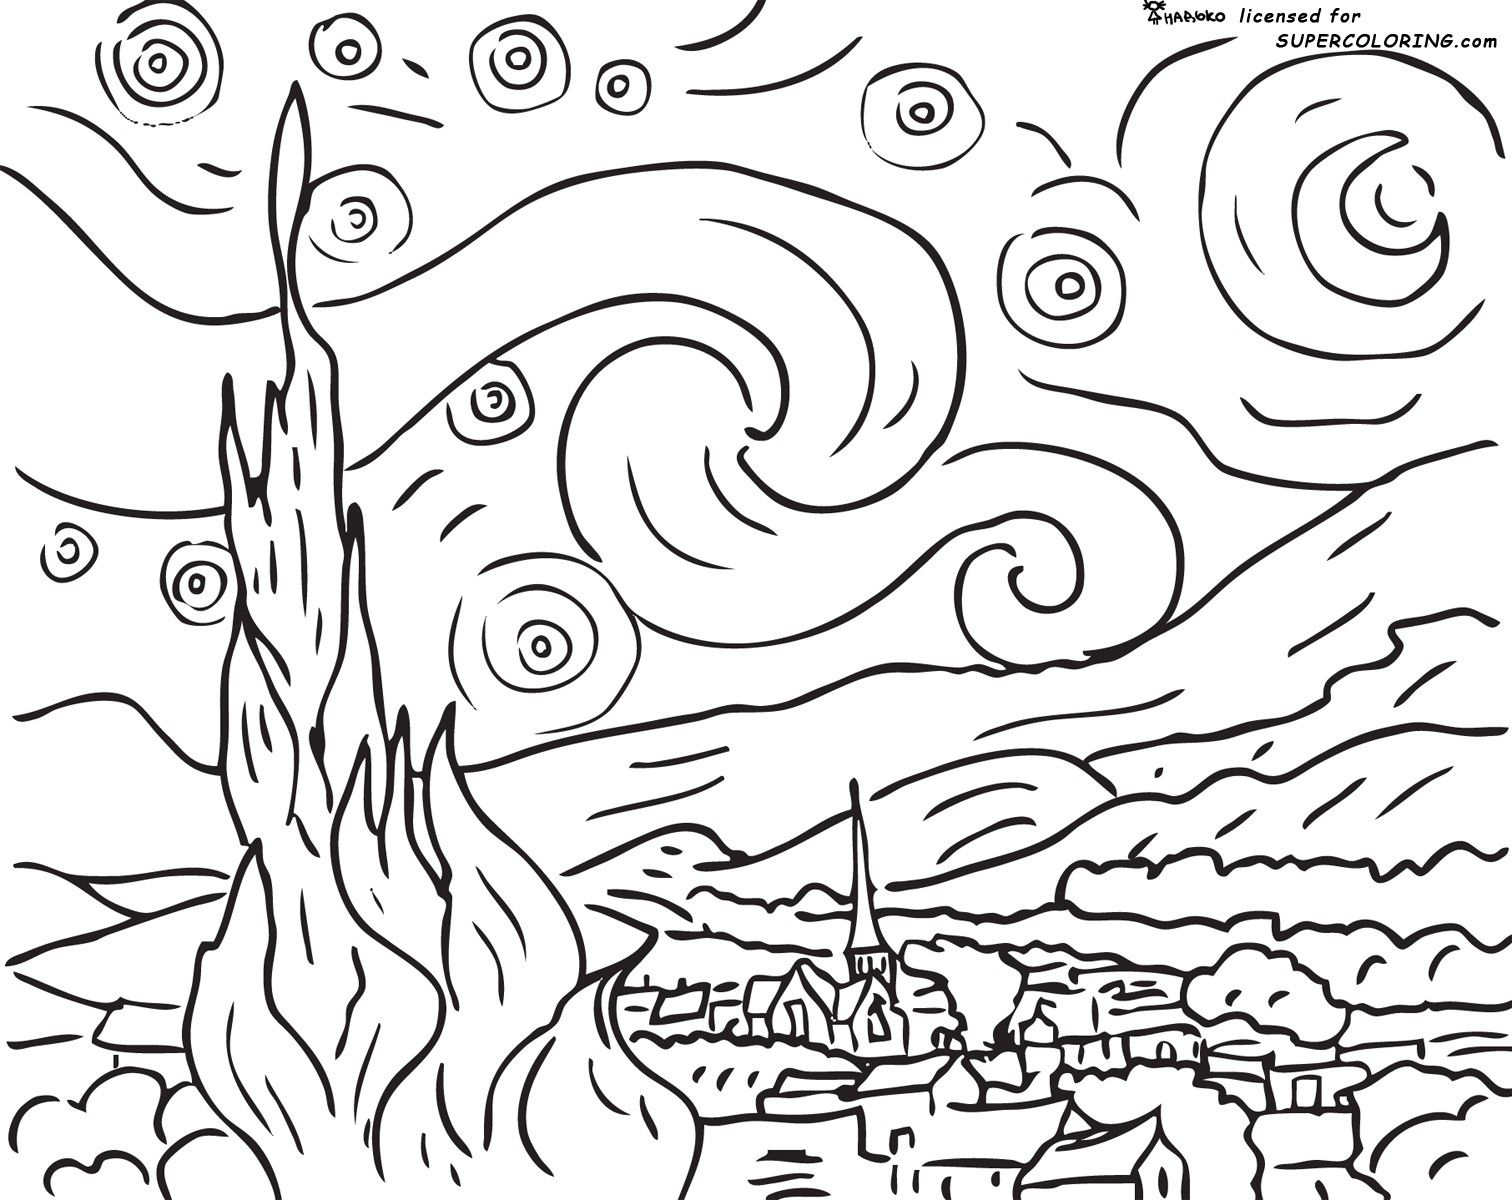 Cool Coloring Pages Elementary Kids